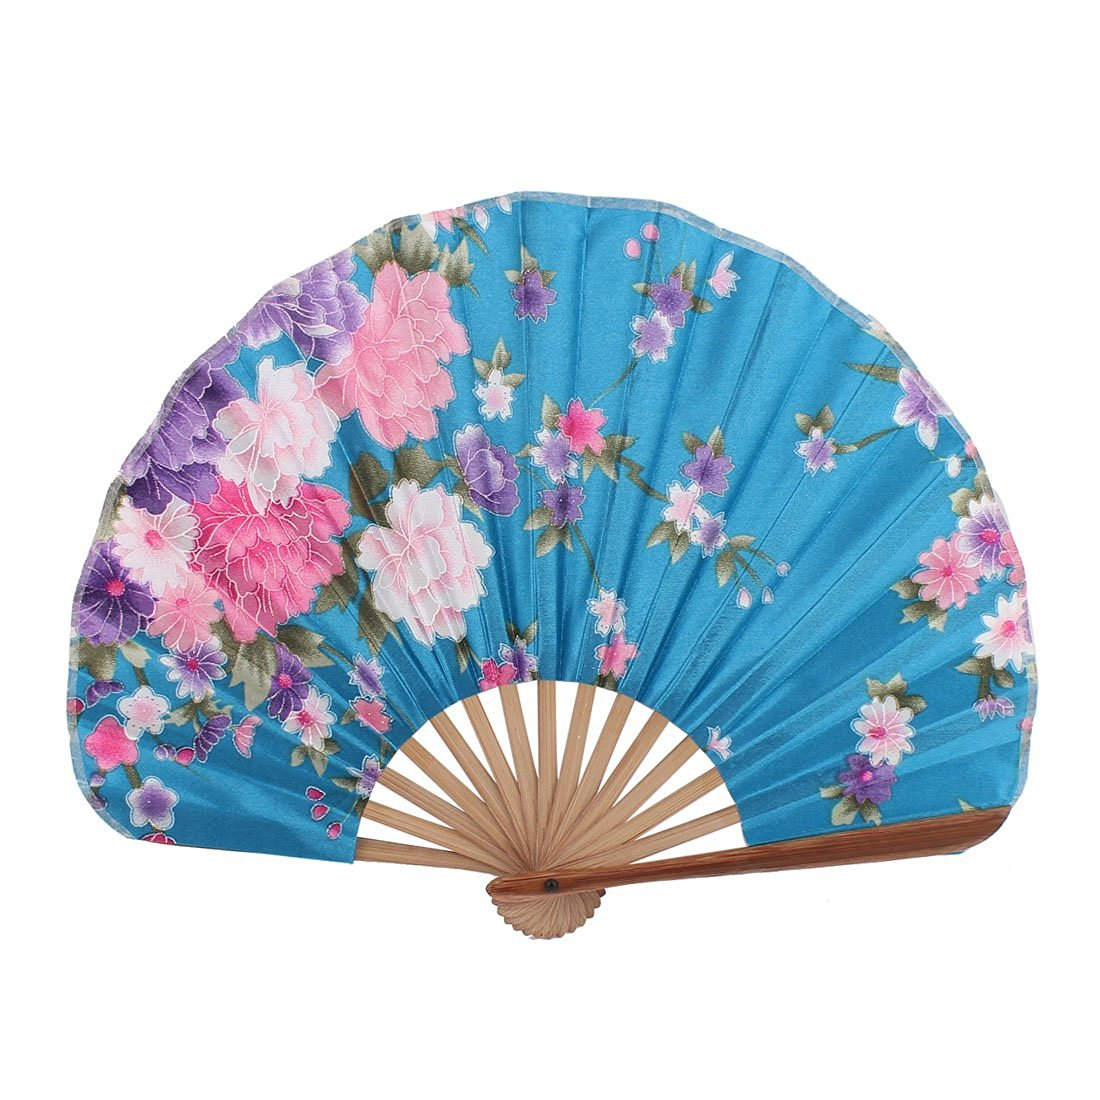 uxcell Bamboo Ribs Flower Printed Wedding Party Decor Folding Hand Fan Teal